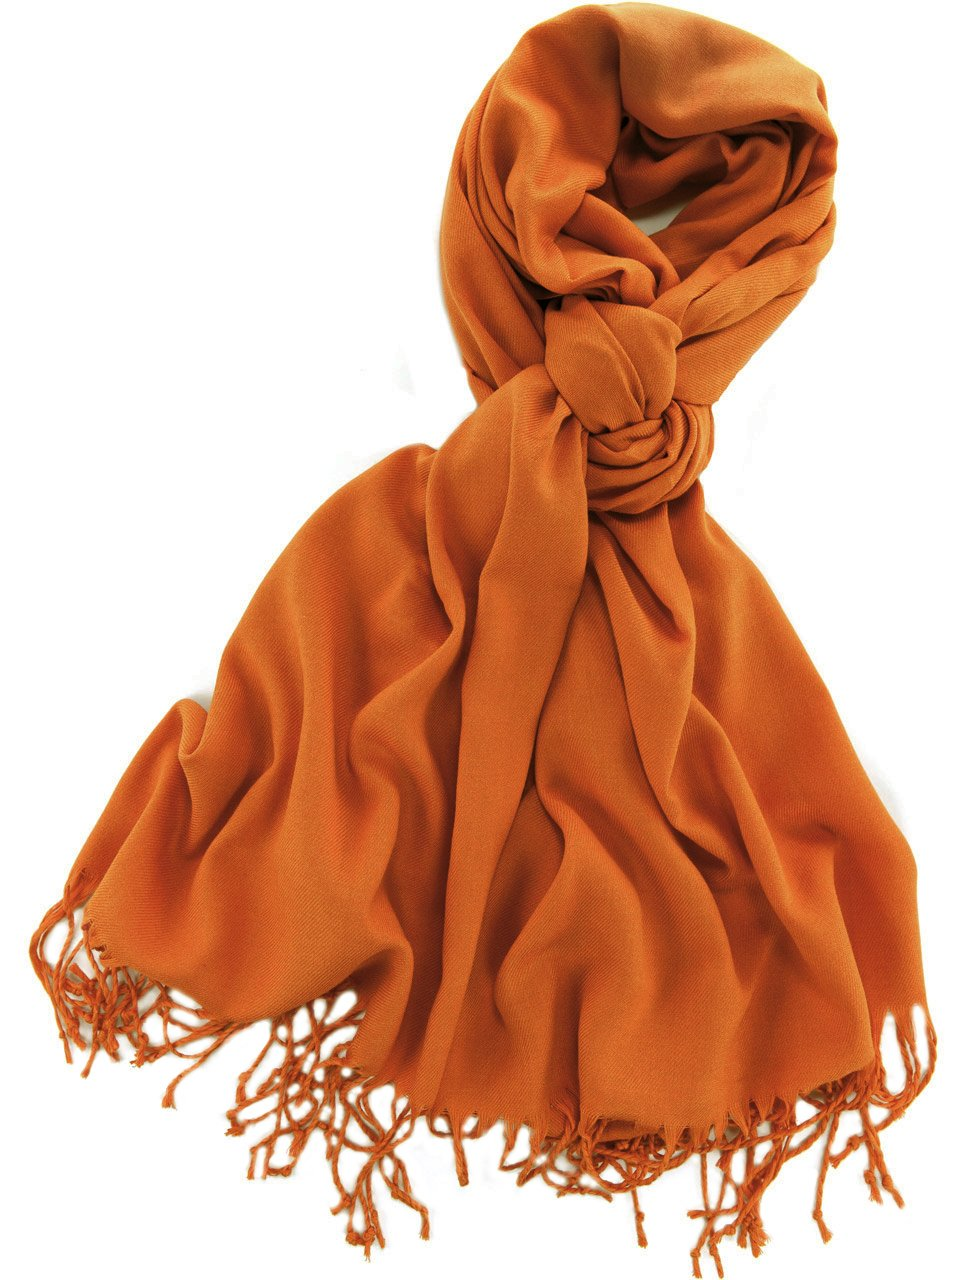 La Purse Pashmina Shawl Scarf - Warm & Extremely Soft - Size 79'' L X 29'' - Pumpkin